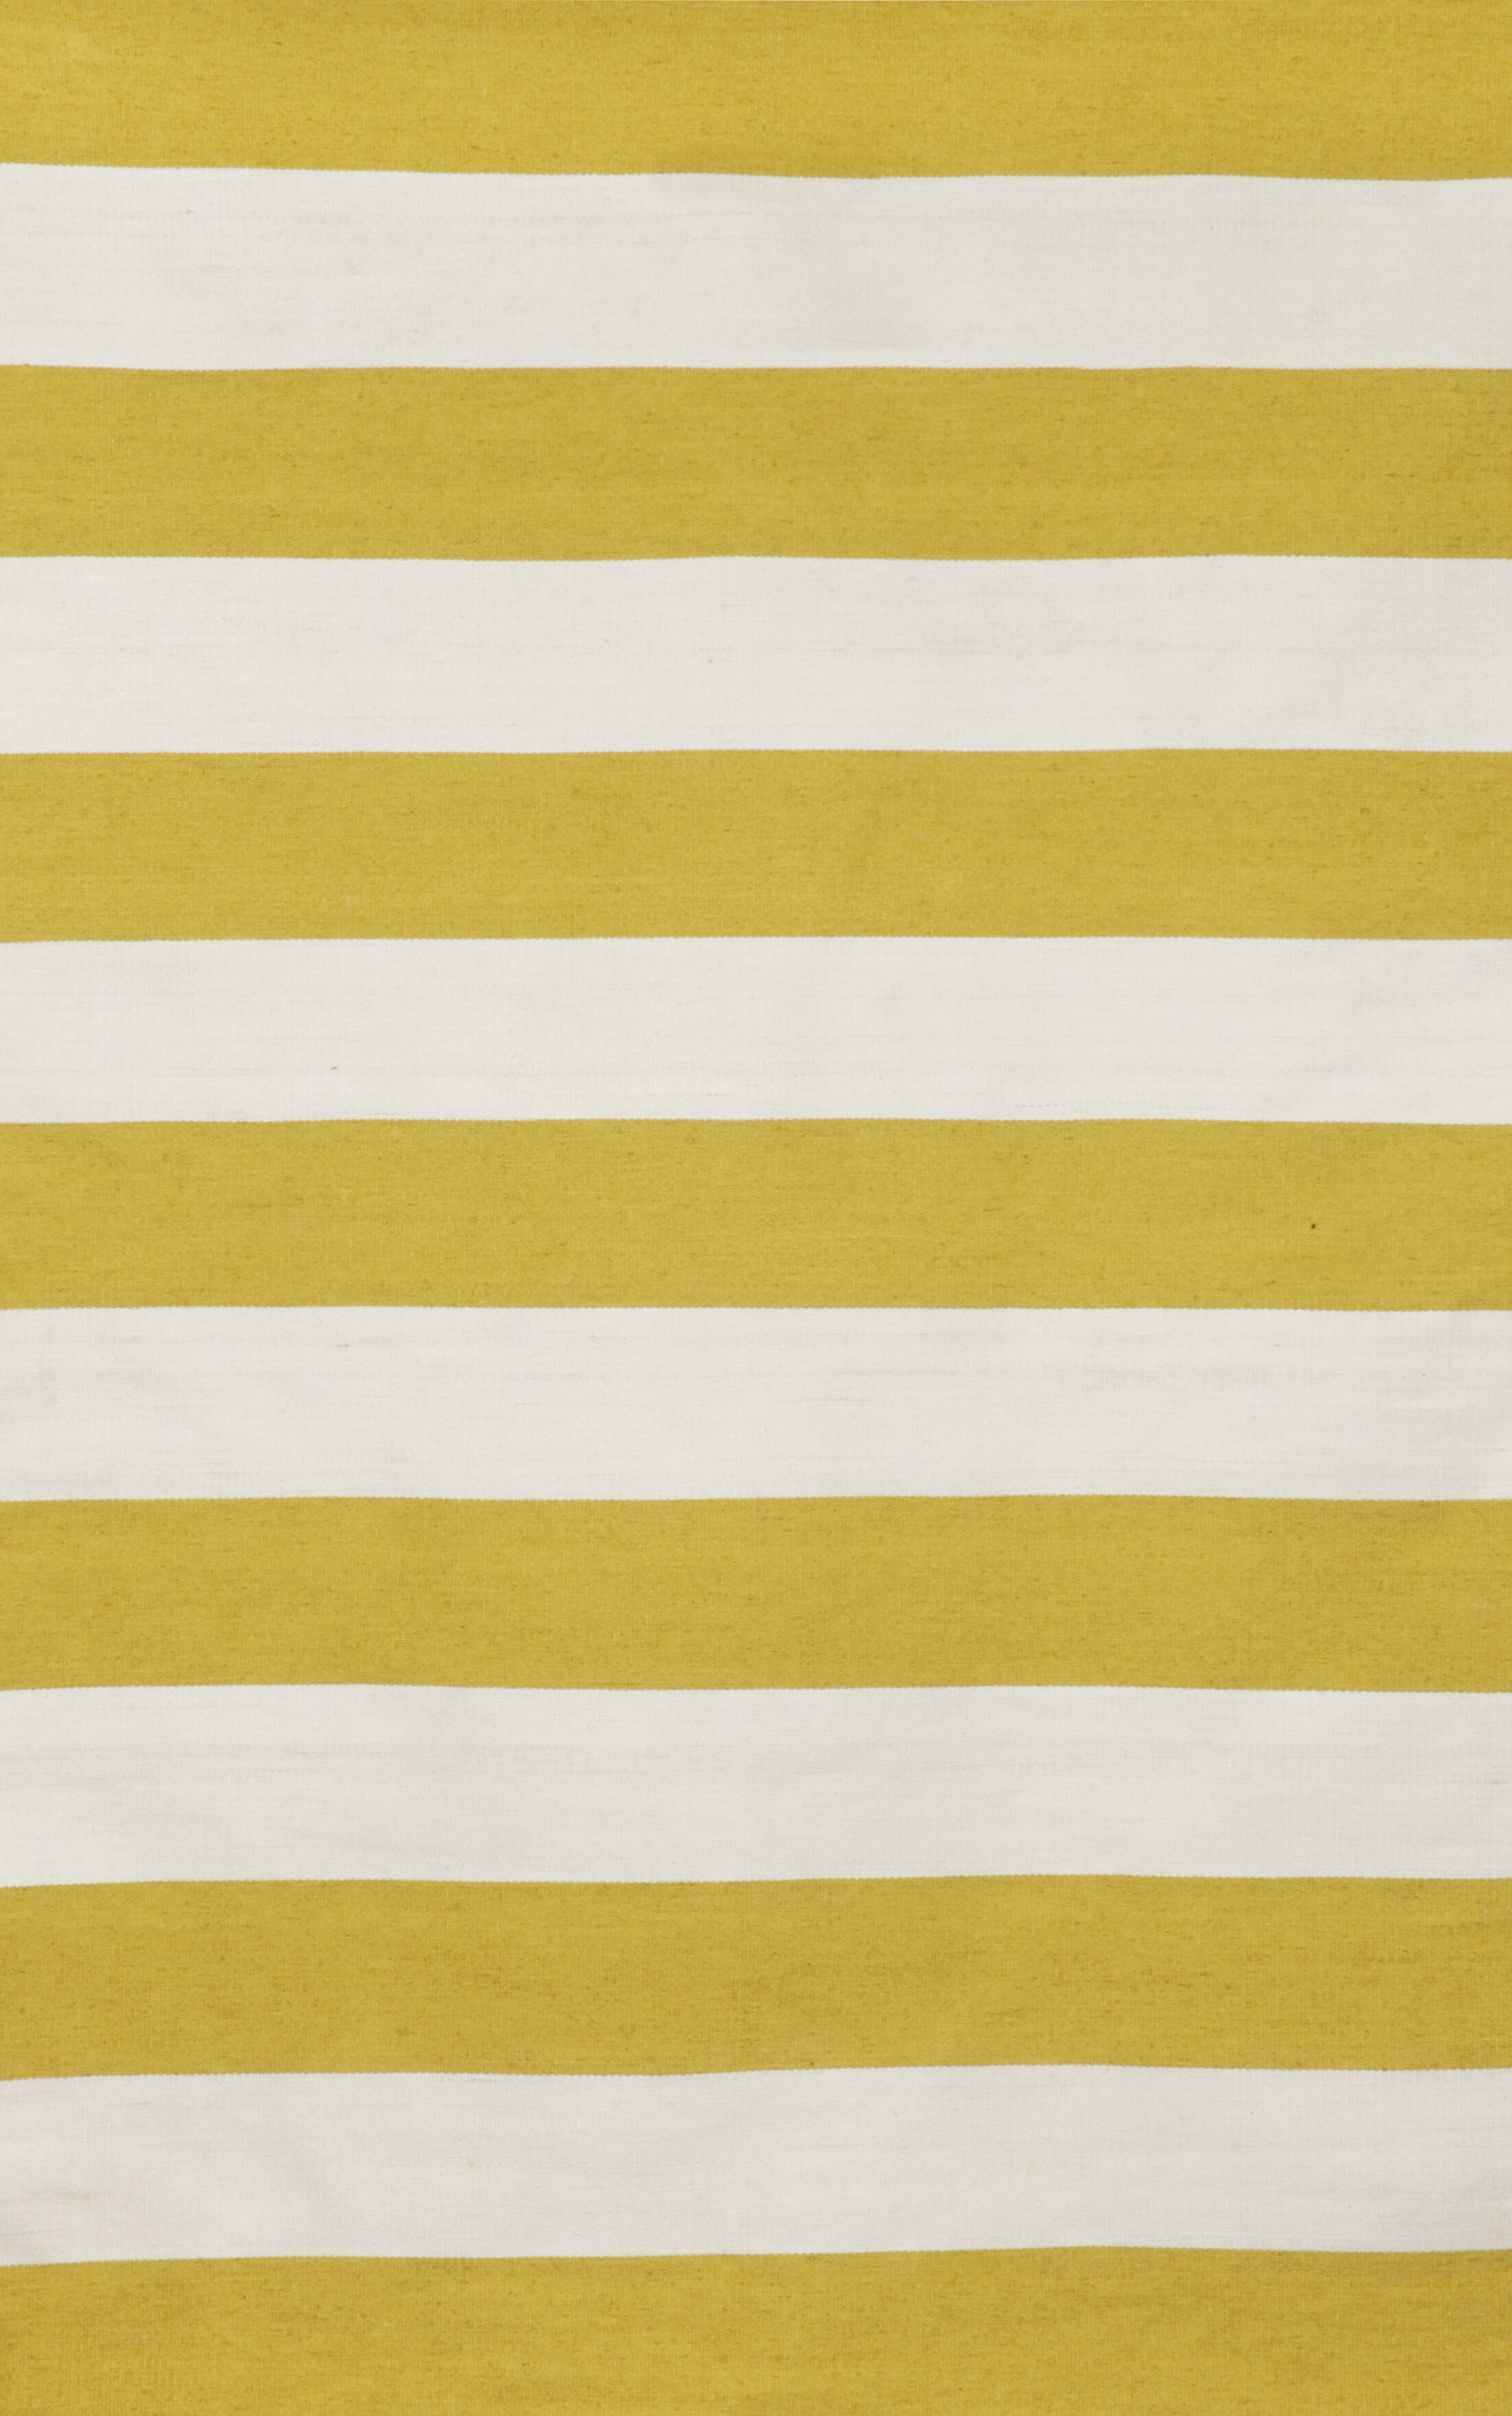 Ranier Stripe Hand-Woven Yellow/Ivory Indoor/Outdoor Area Rug Rug Size: Rectangle 5' x 7'6